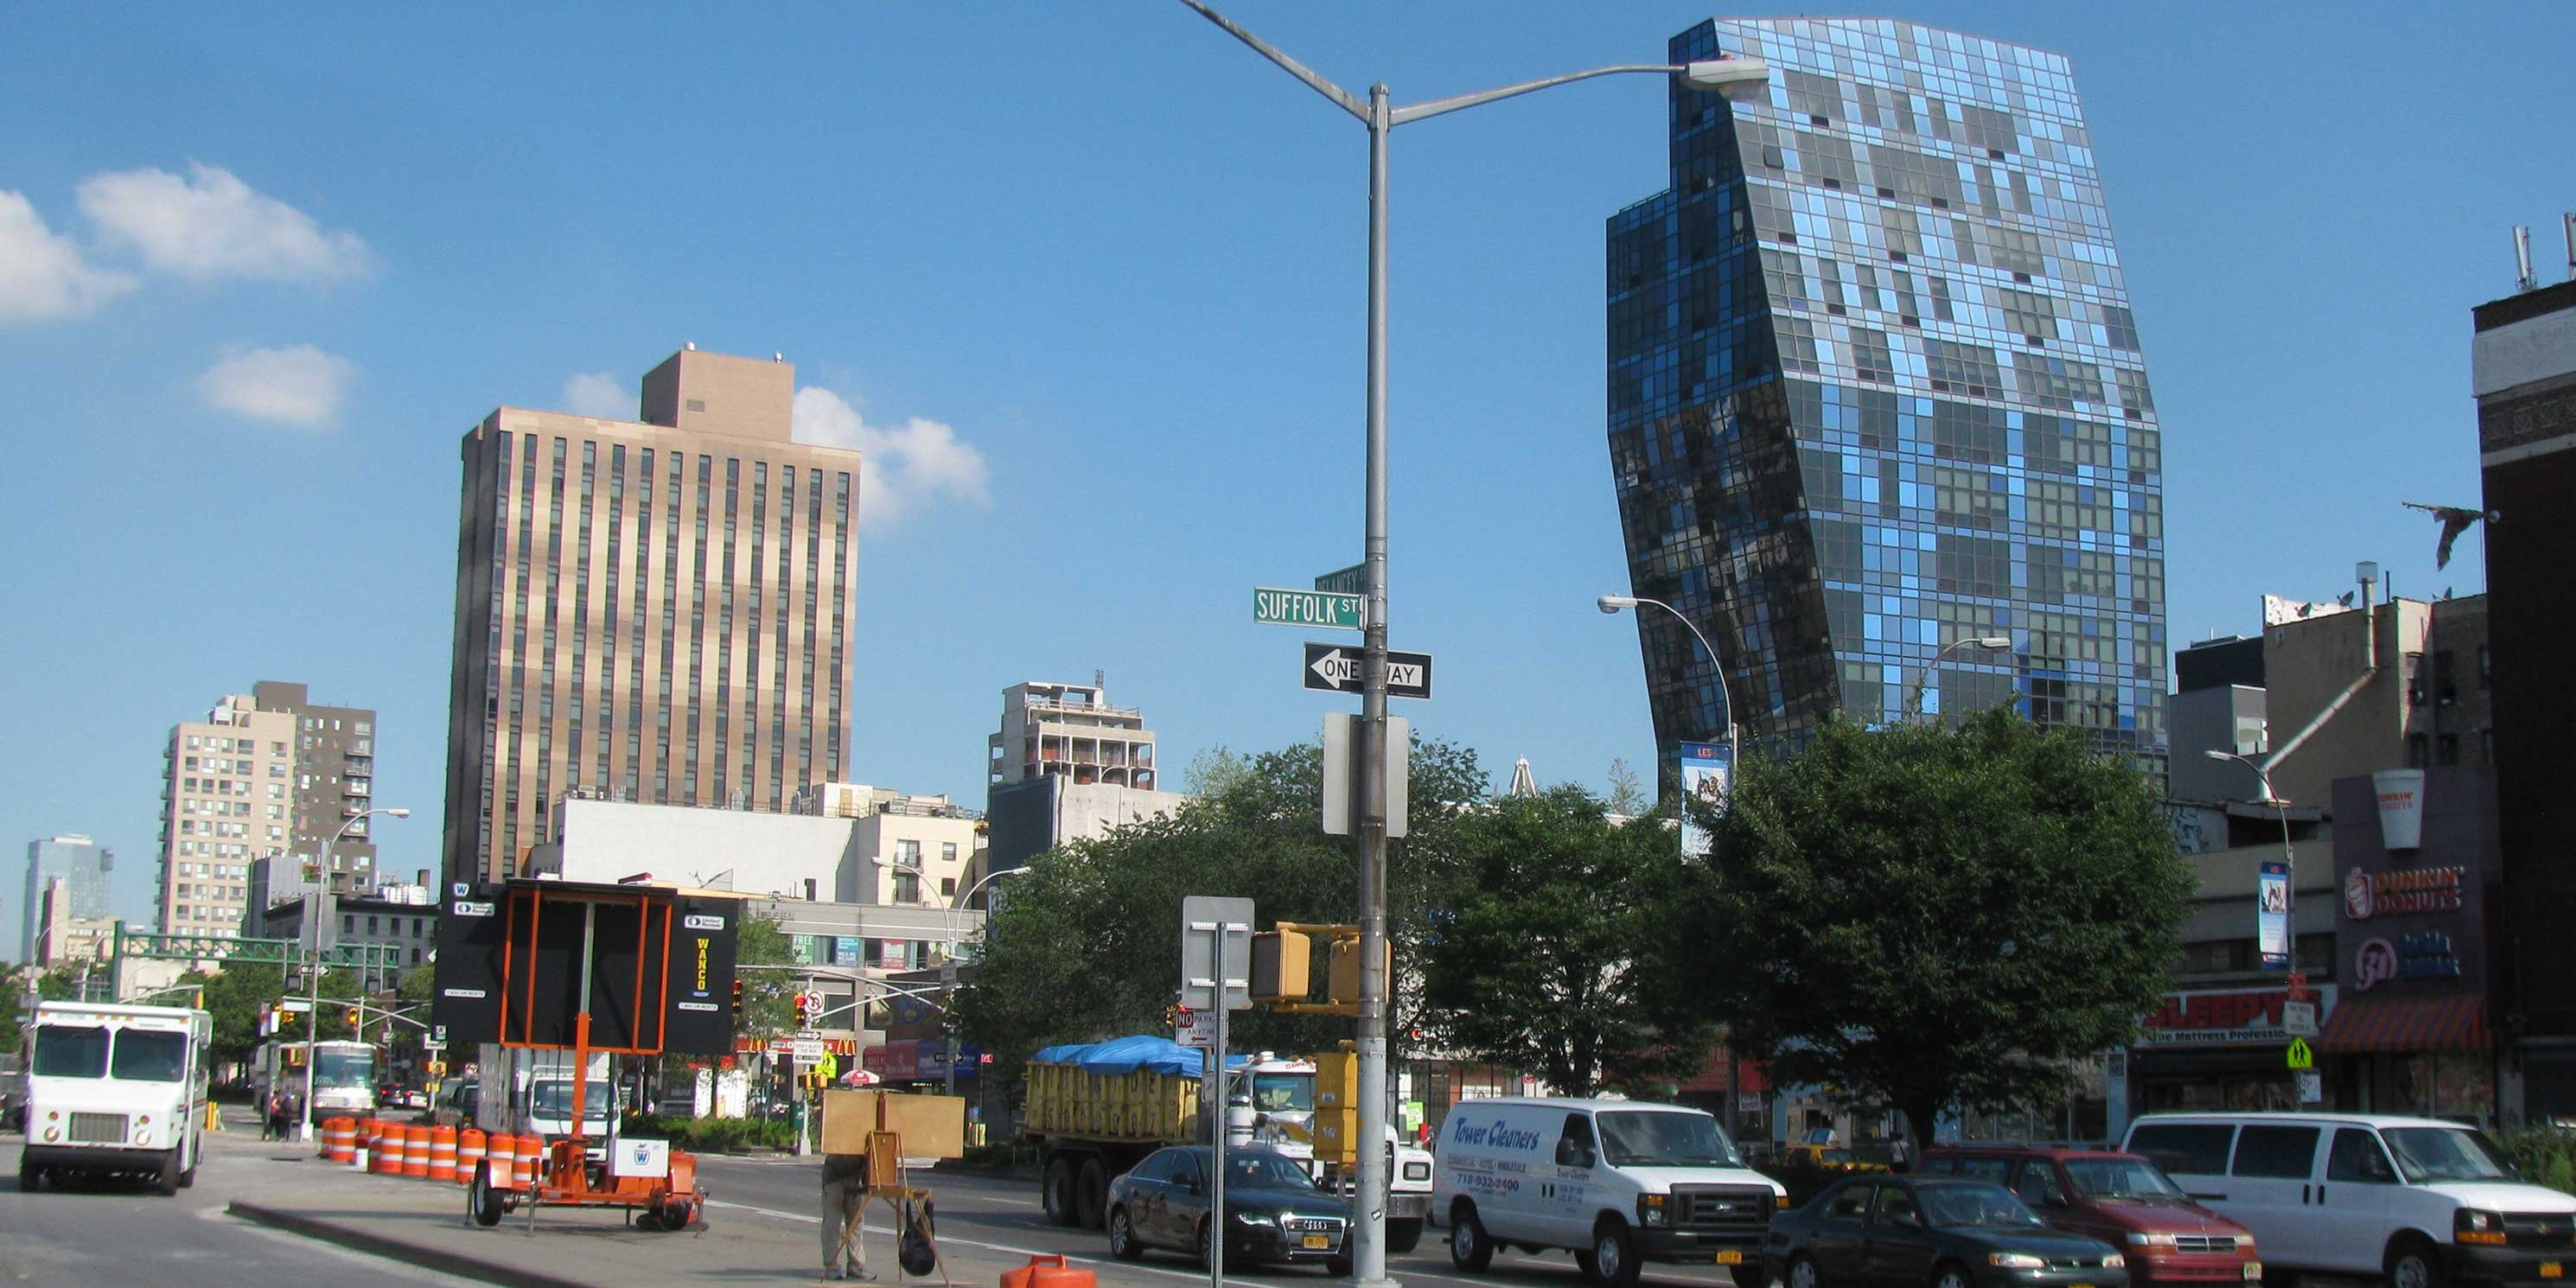 intersection of Delancey Street and Suffolk Street